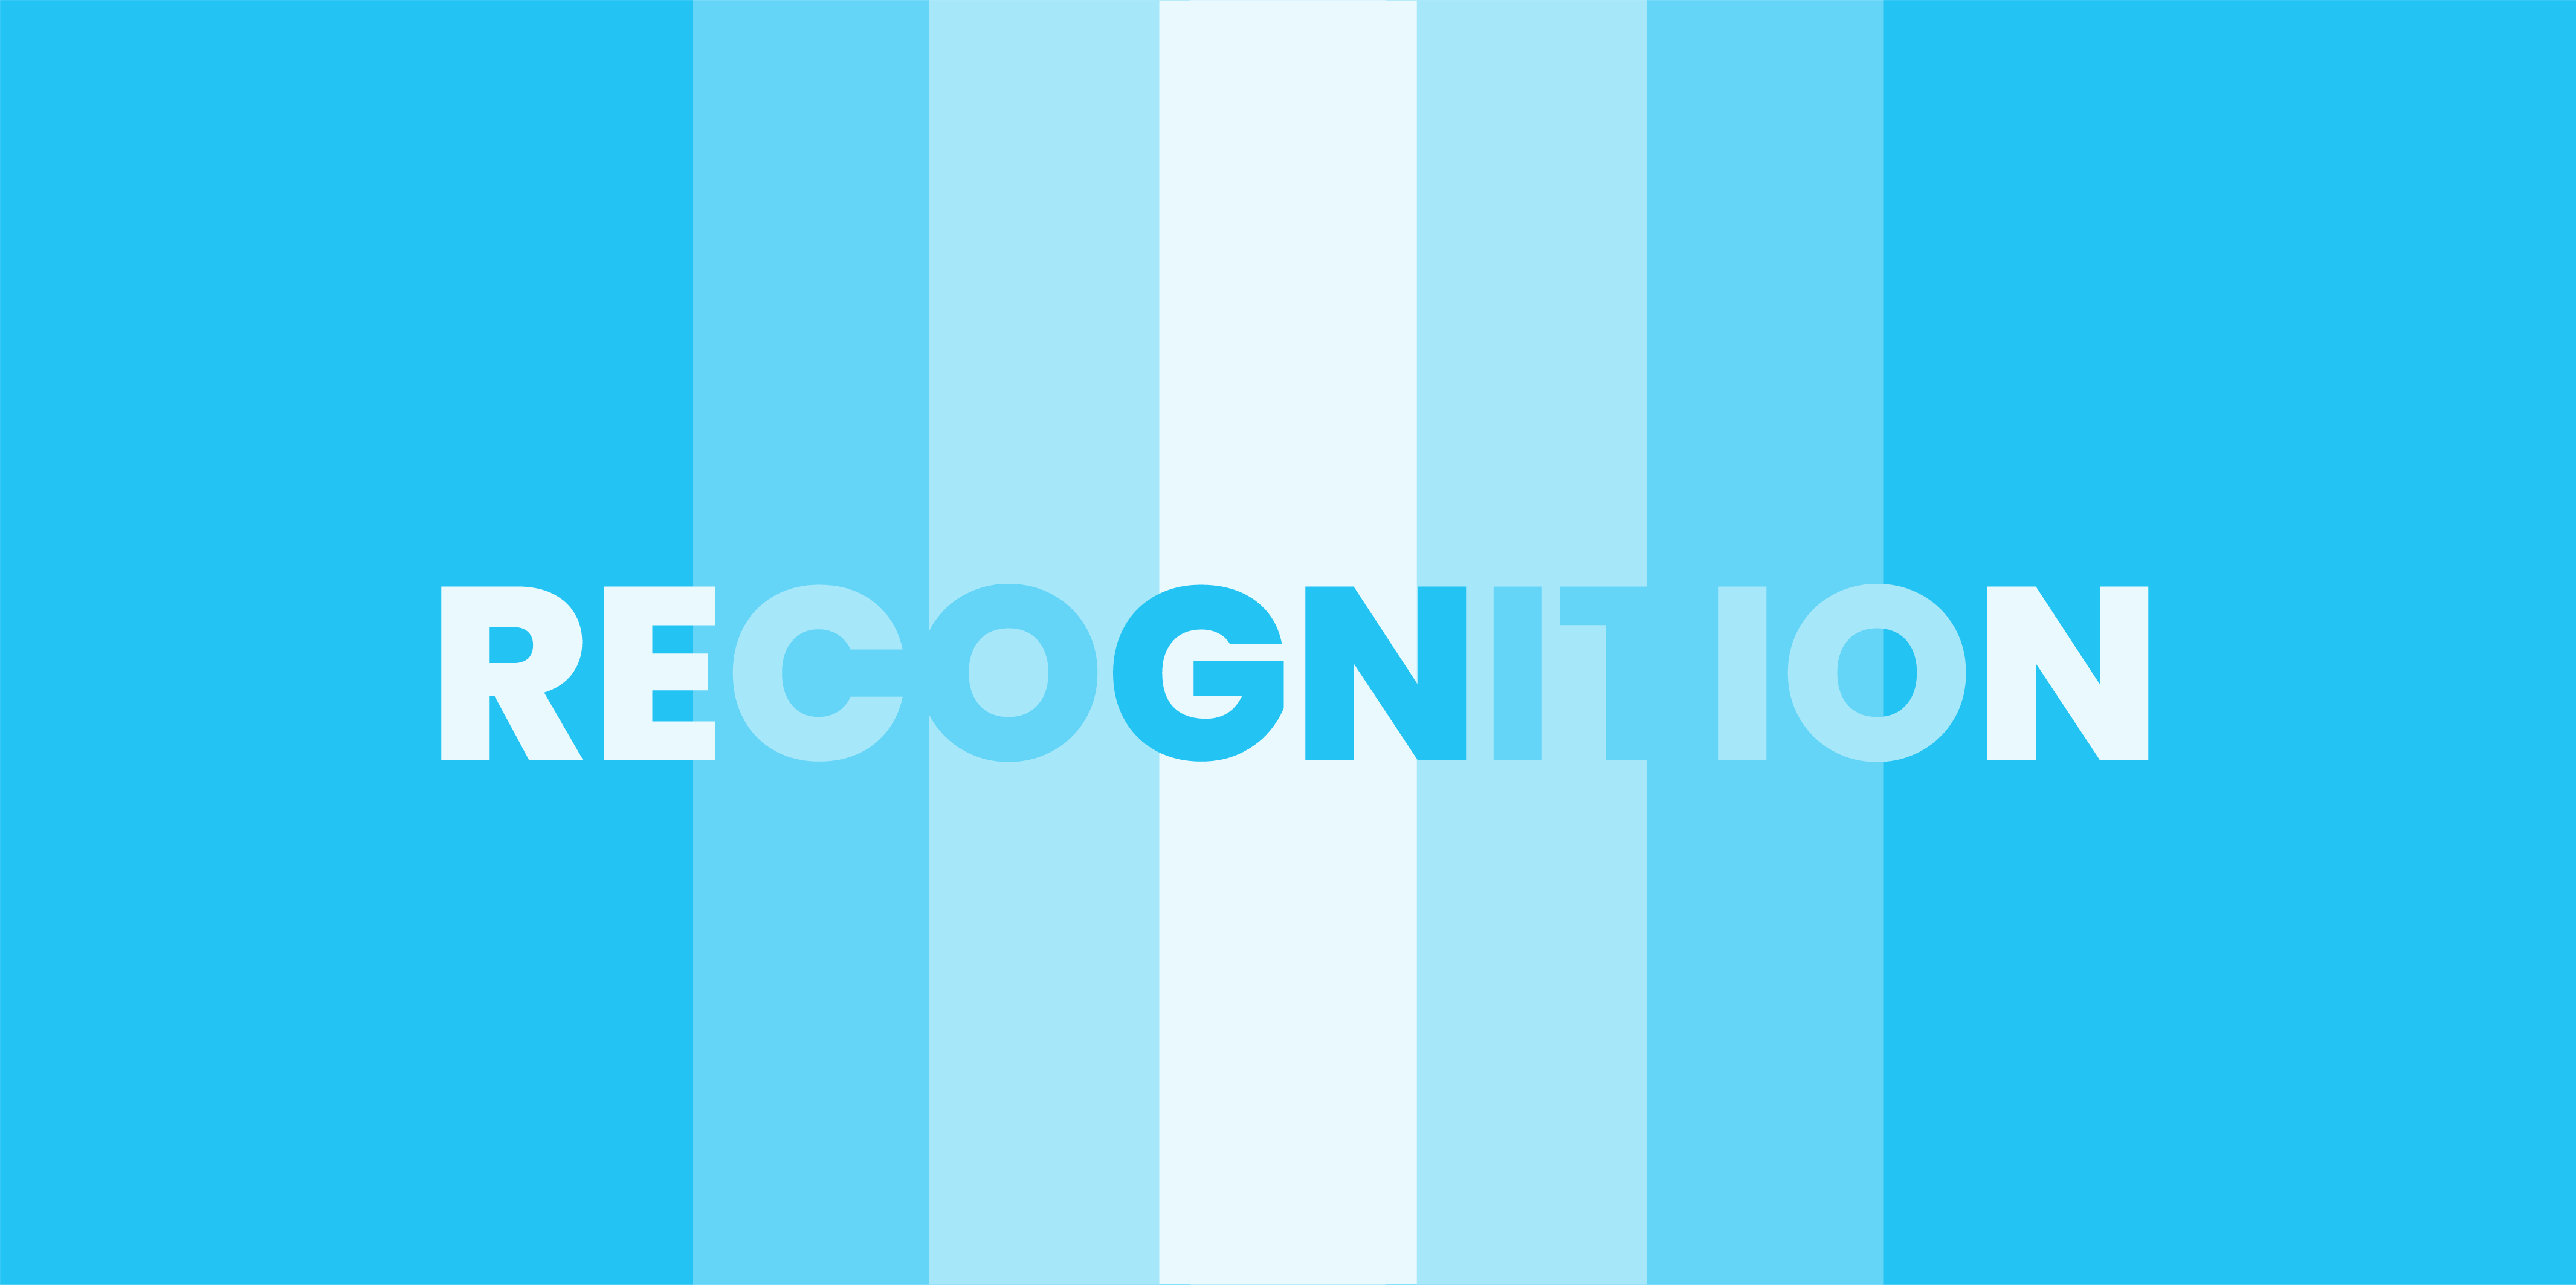 Reflecting on Recognition